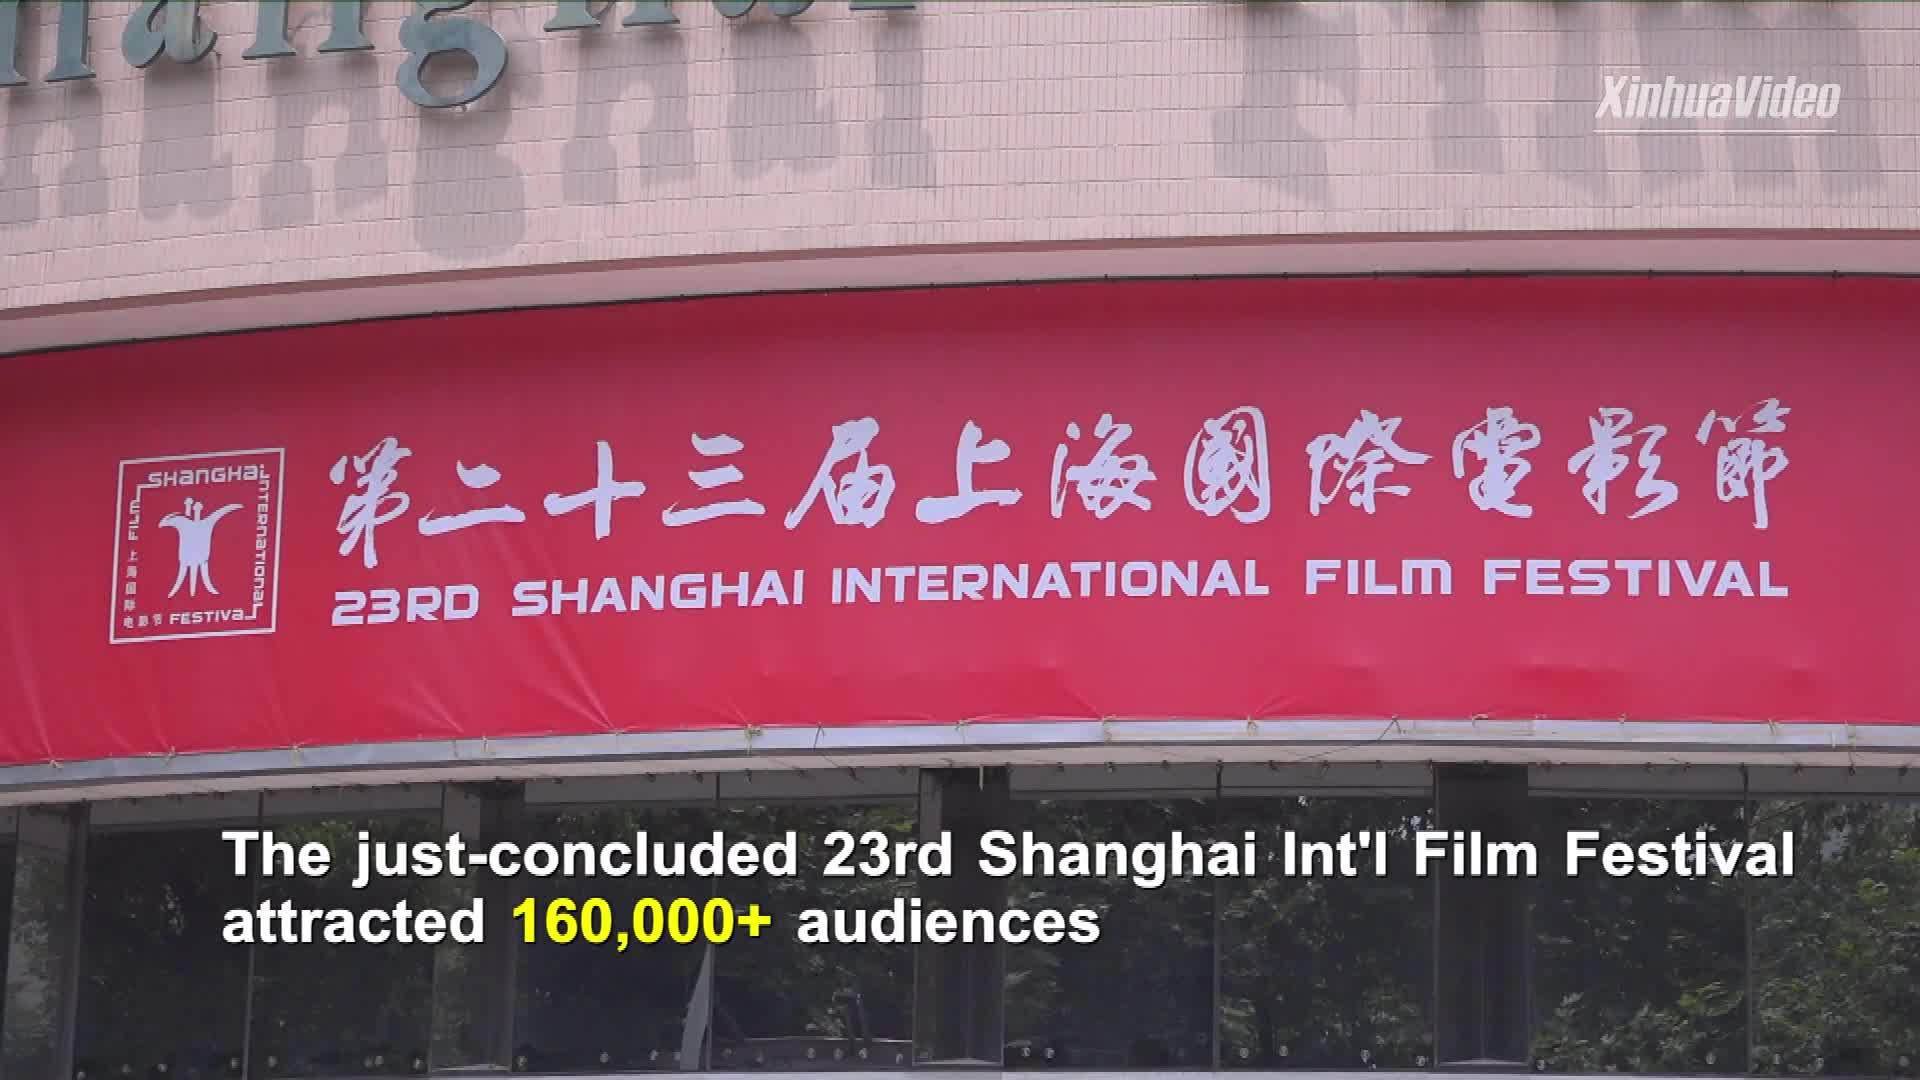 Recovery signals at Shanghai International Film Festival